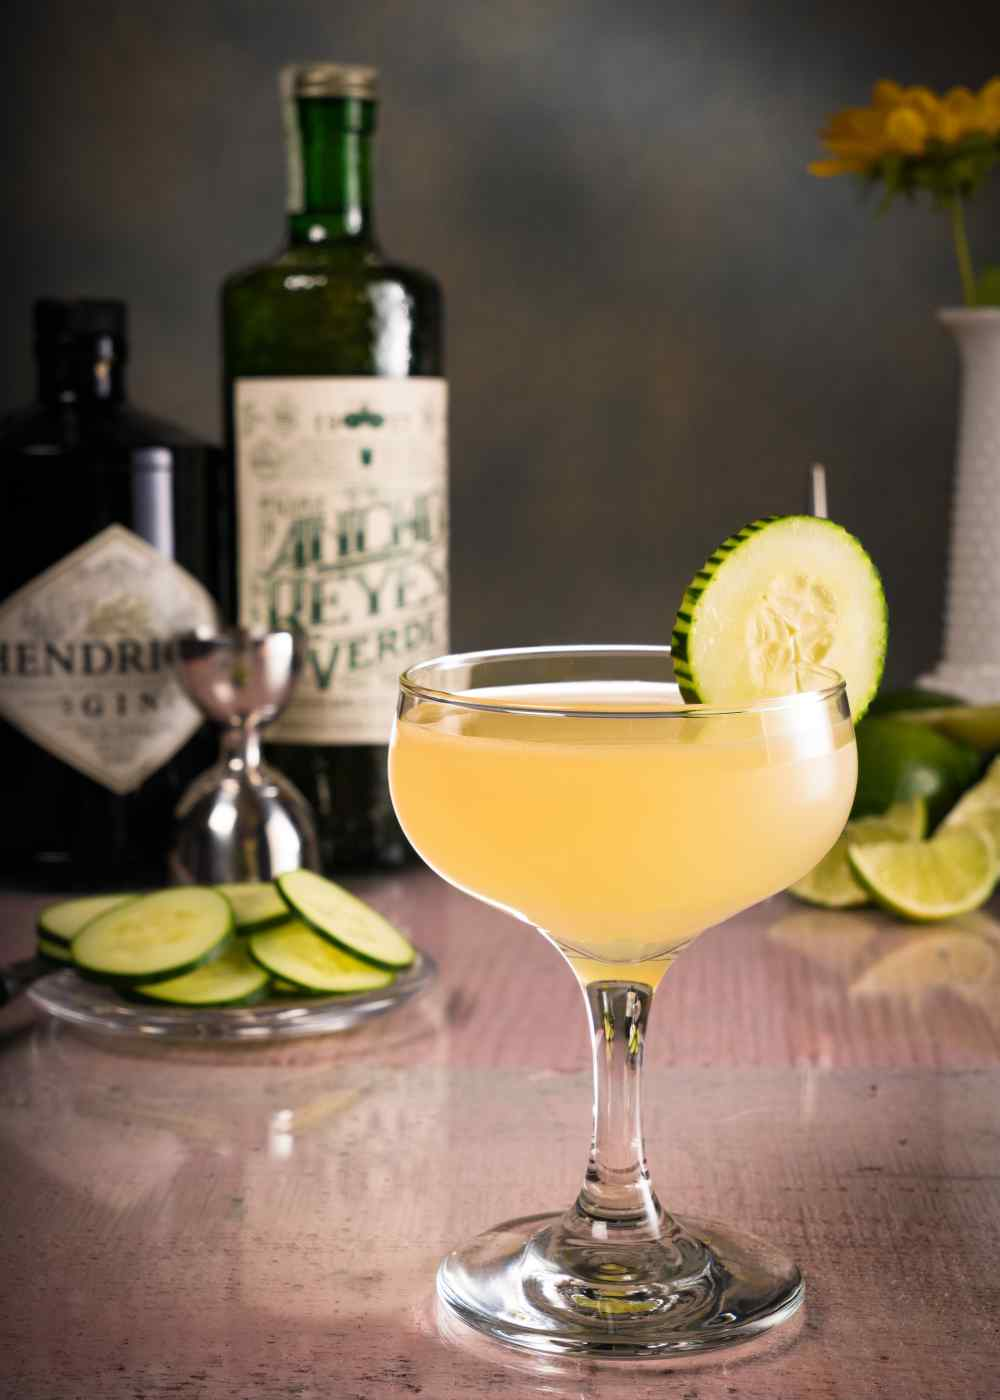 http---s3-eu-west-1.amazonaws.com-fthtsi-assets-production-ez-images-5-7-6-6-1286675-1-eng-GB-1-Verde-Gimlet